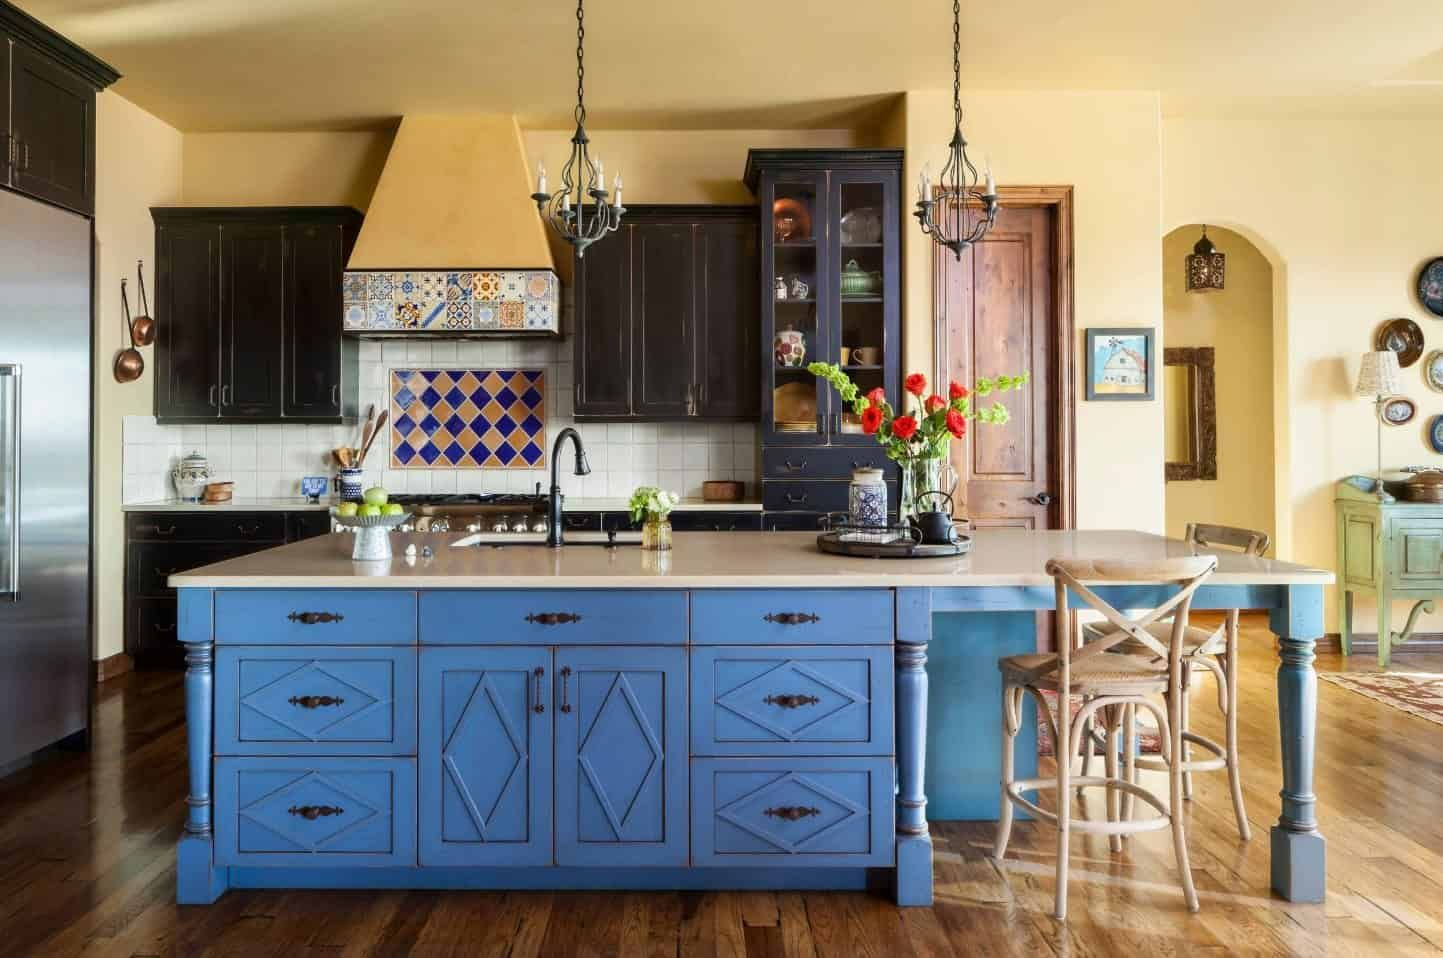 65 Southwestern Kitchen Ideas Photos Kitchen Remodel Small Kitchen Marble Kitchen Design Gallery